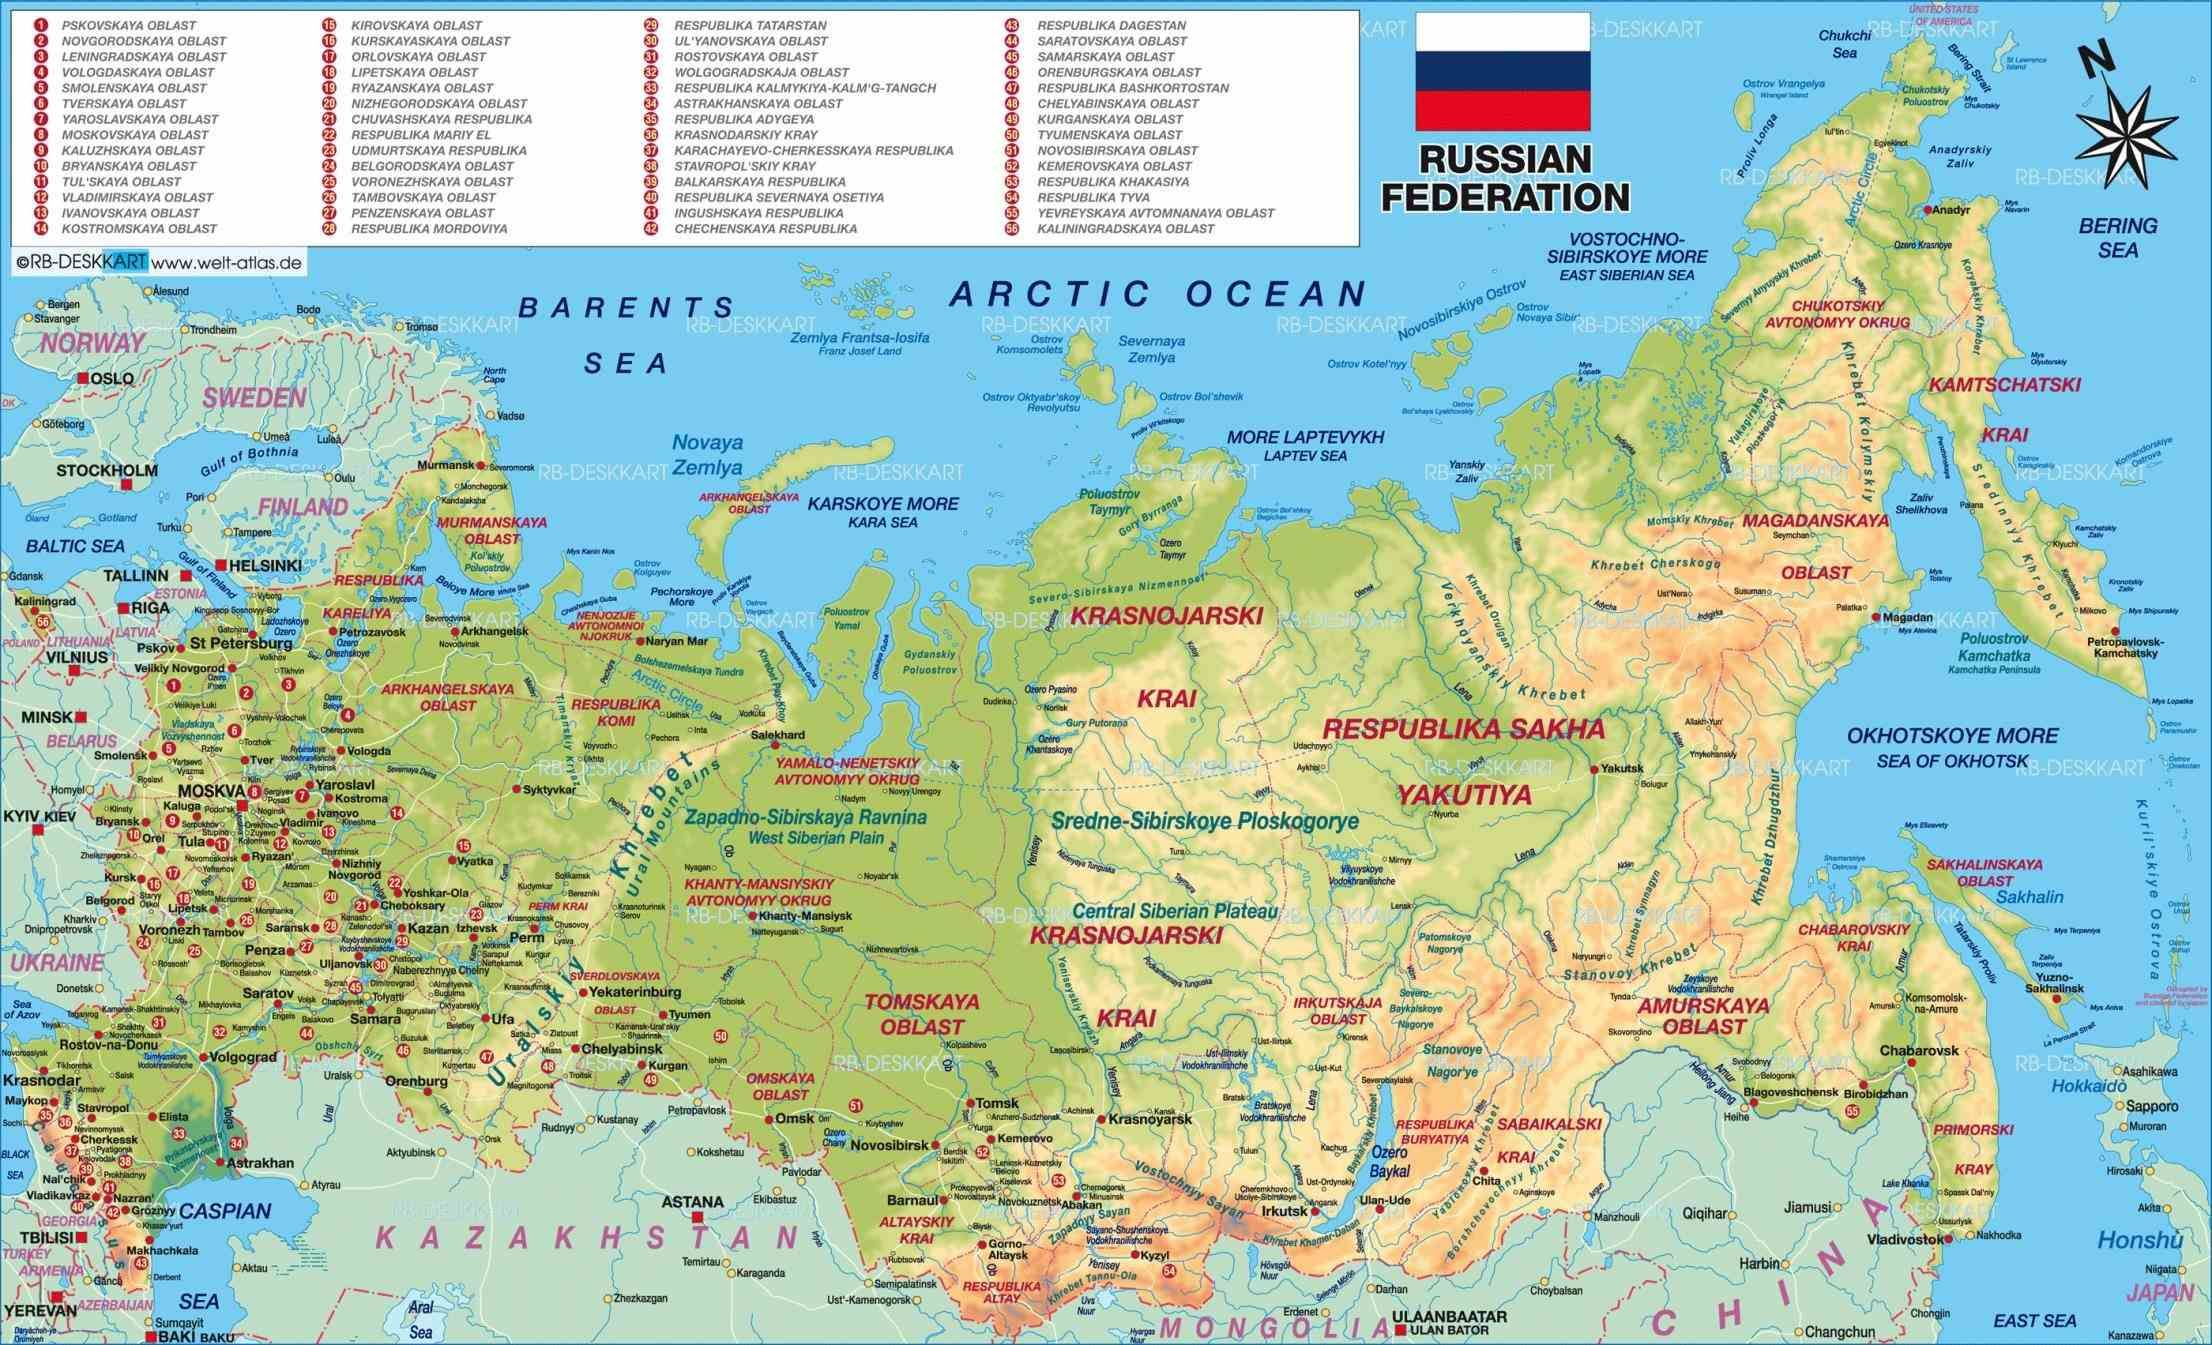 Connects Moscow Cities Urals Siberian Federal Districts With Far